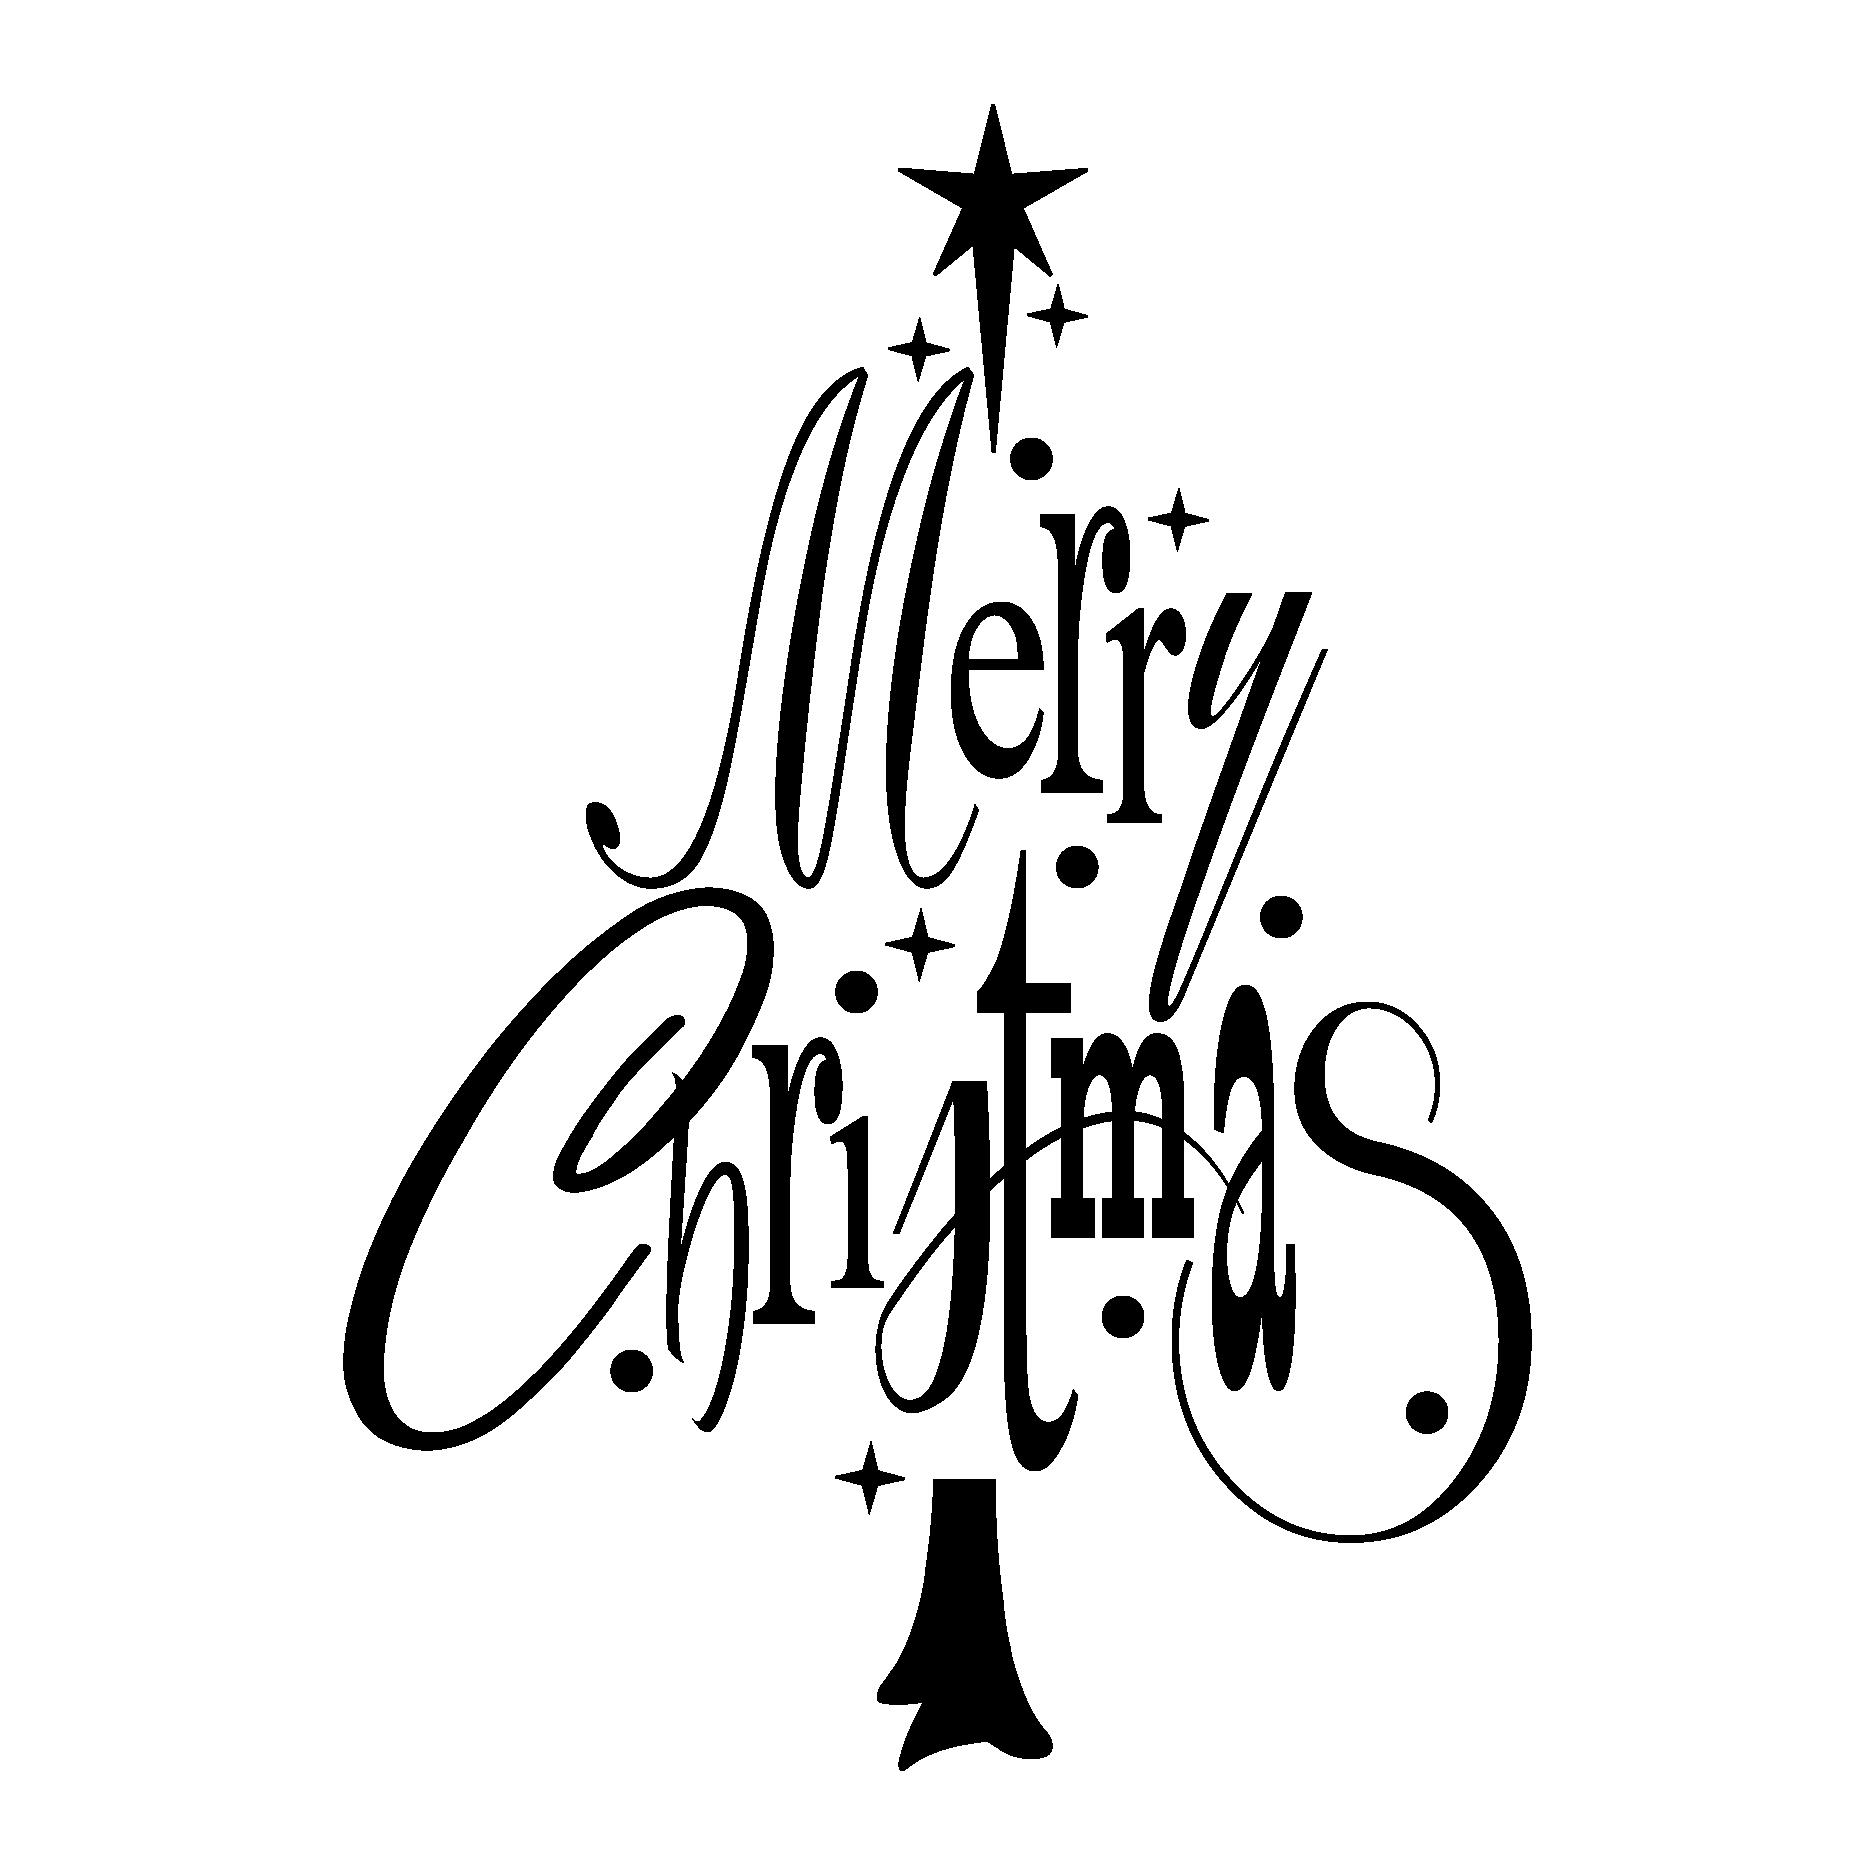 Merry Christmas Tree Wall Quotes Decal